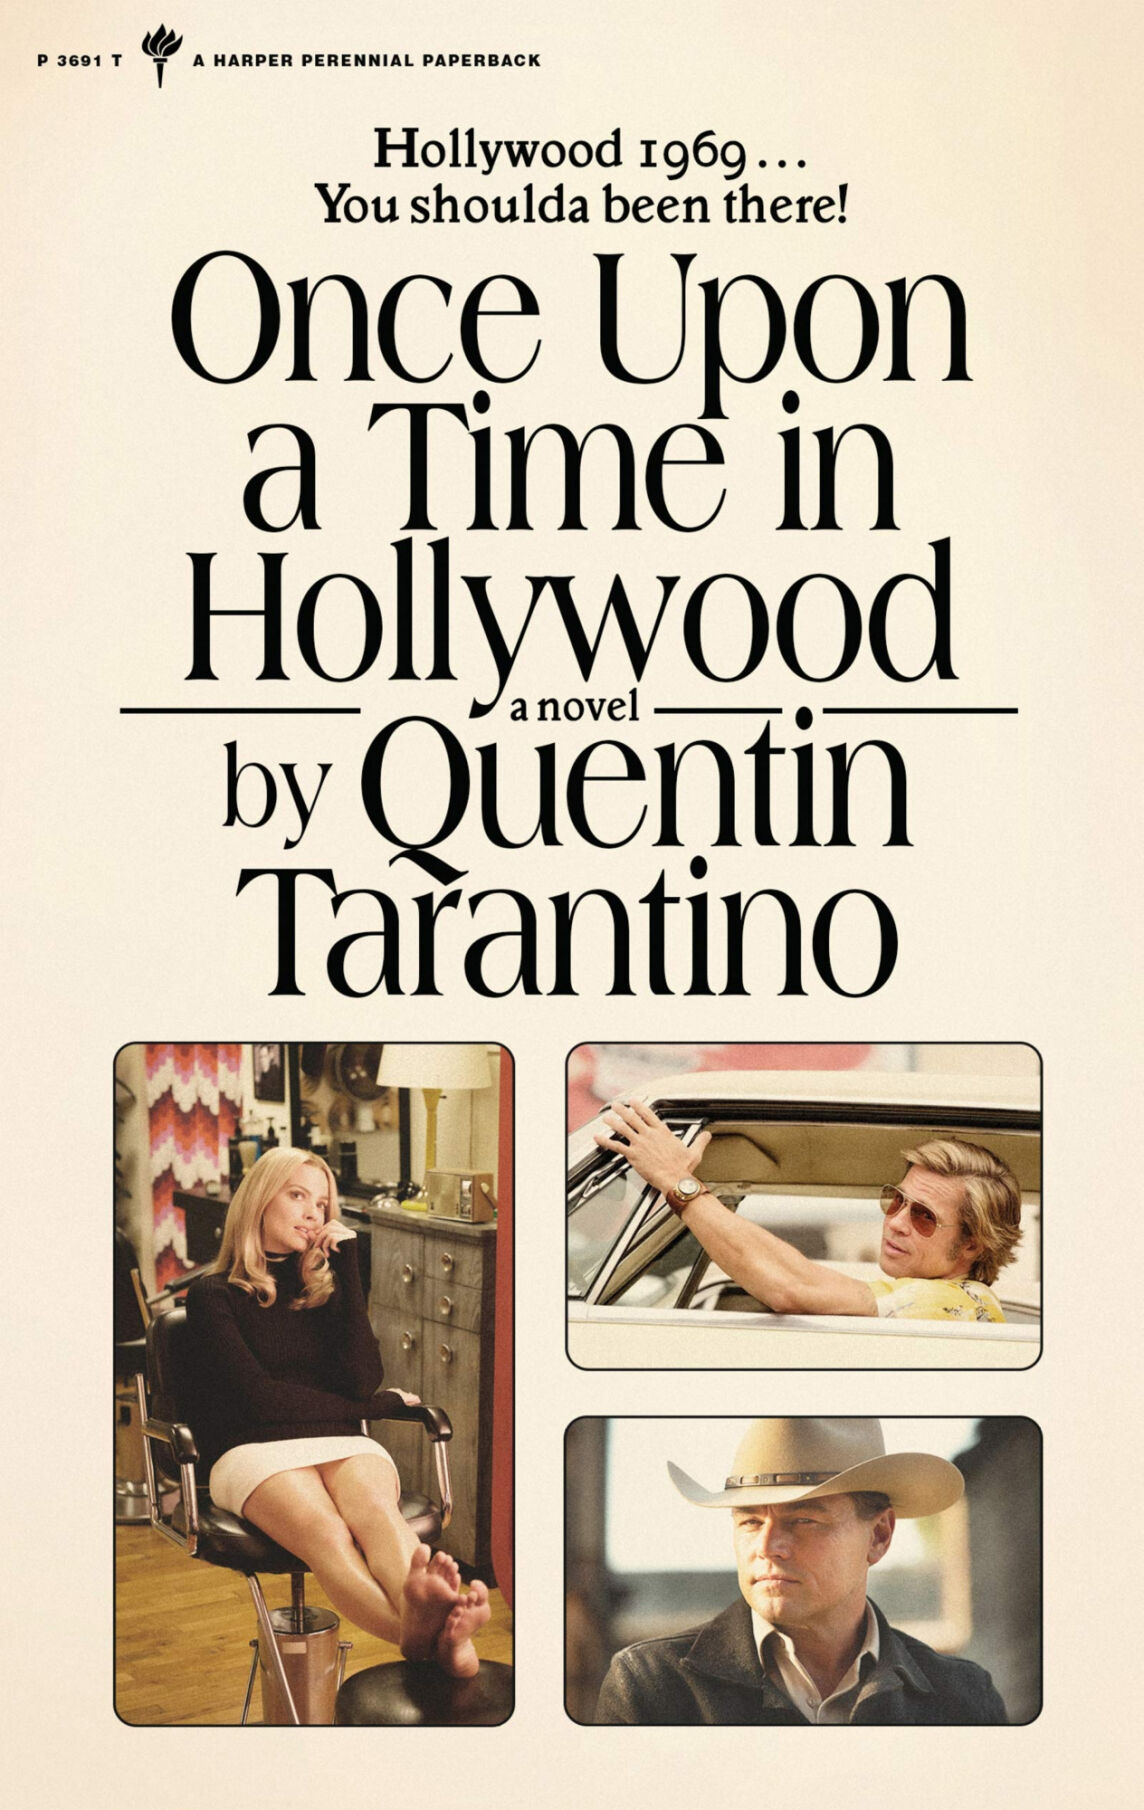 Tarantino flips the script with 'Once Upon a Time ...' novel